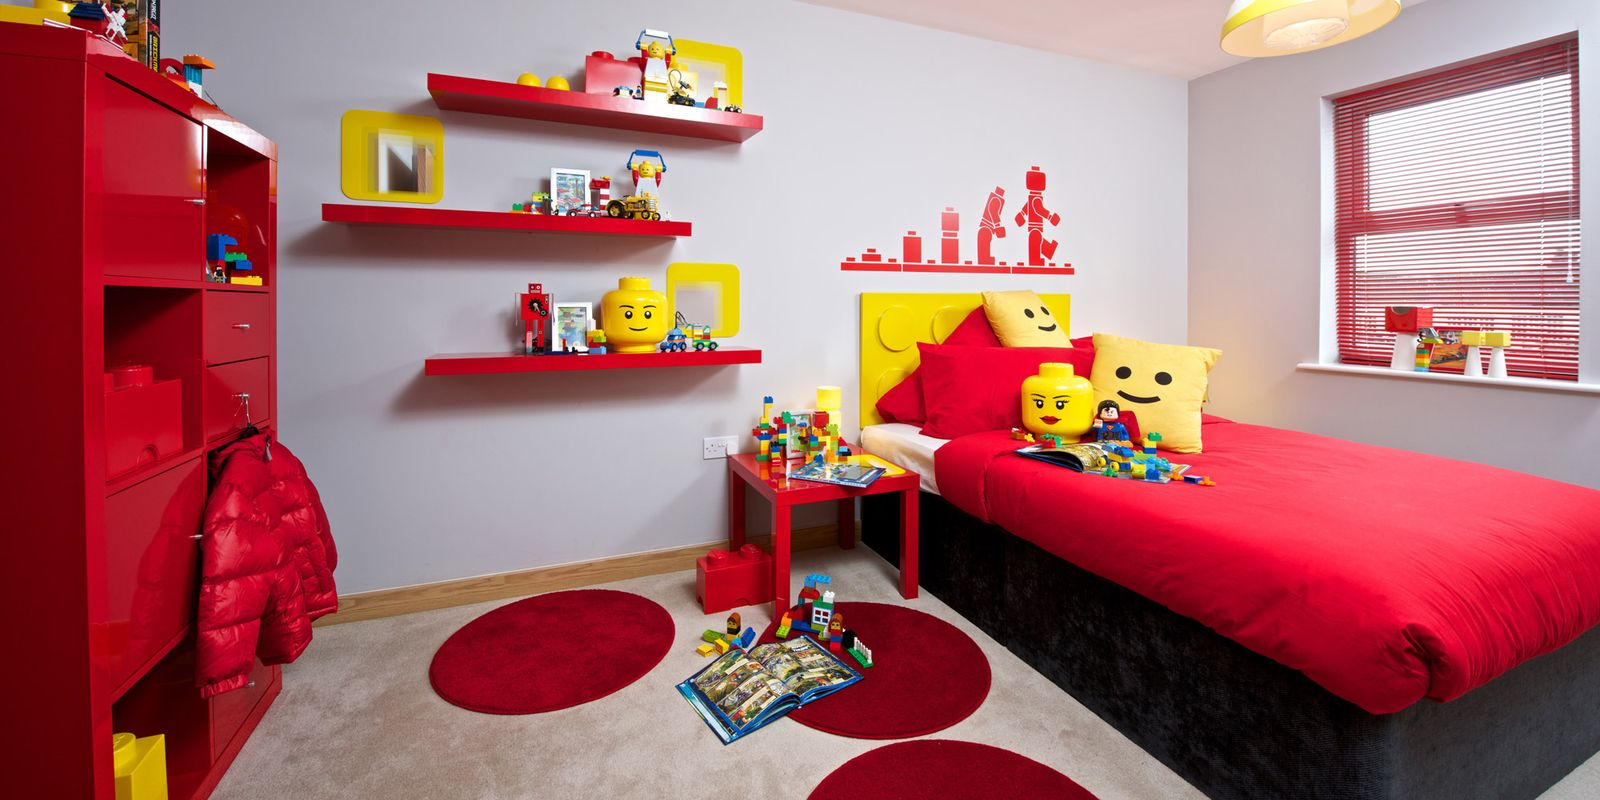 Lego Kids Bedroom Weston Homes Lego Room